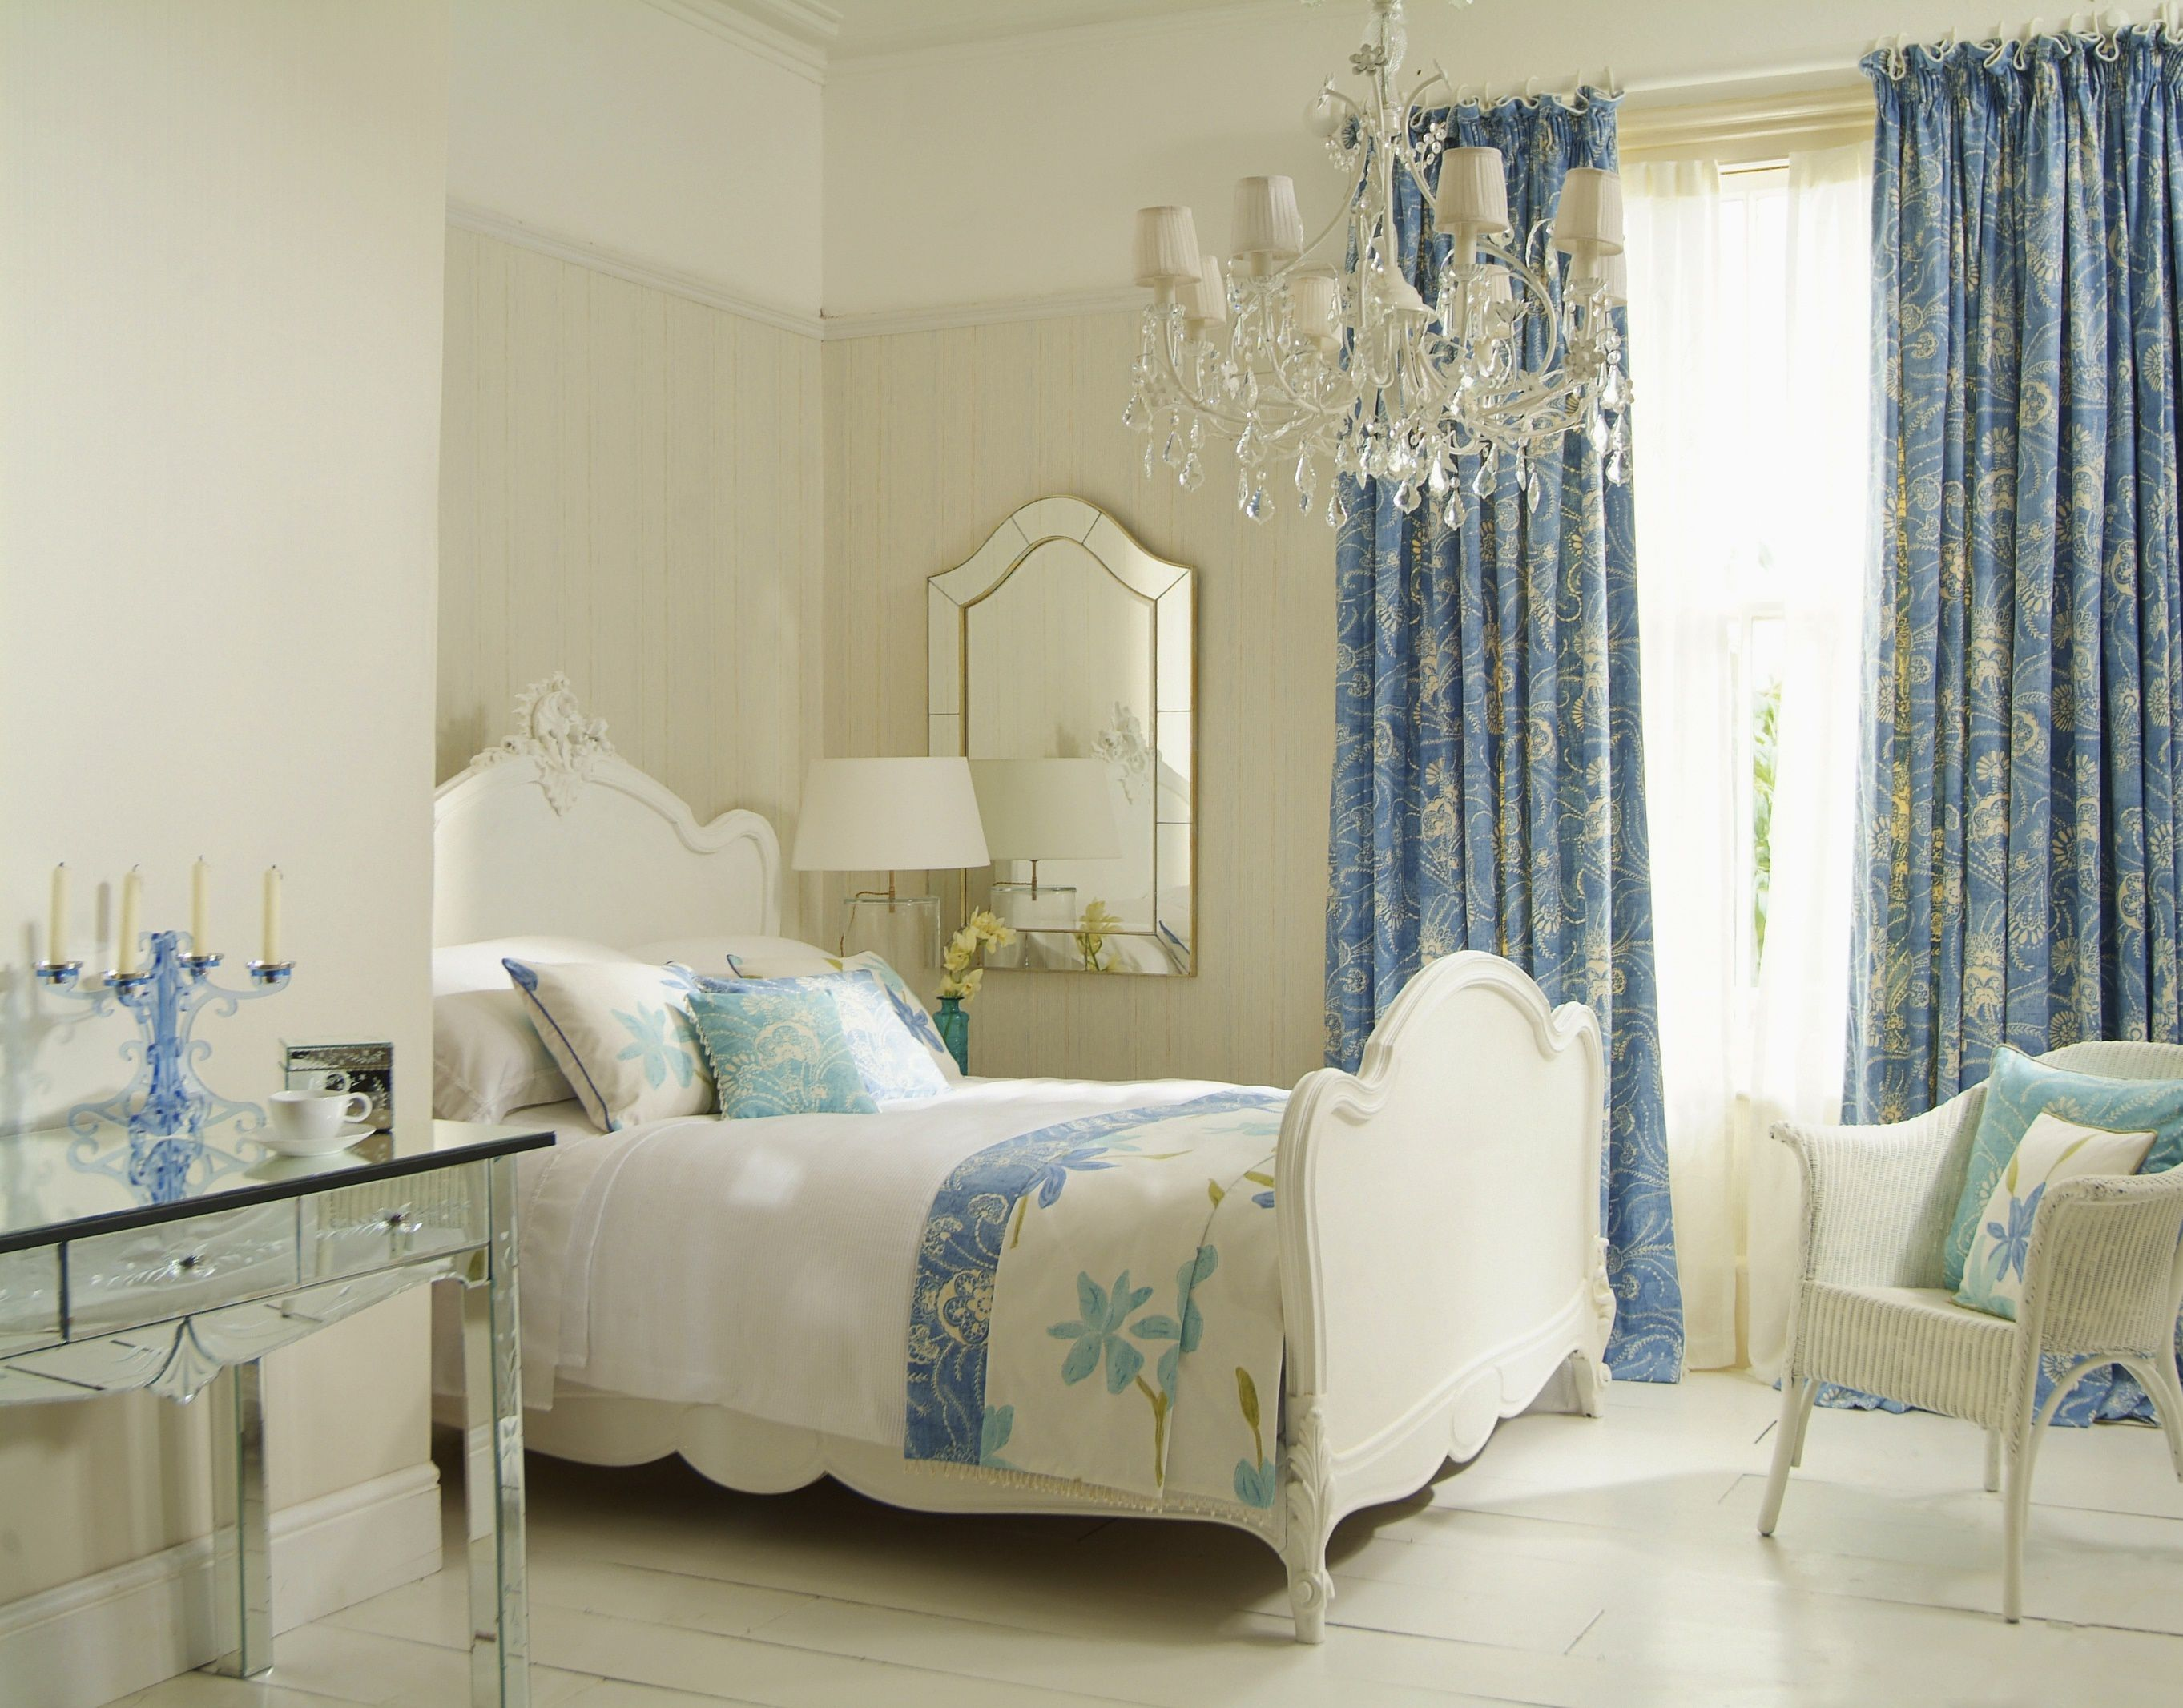 4 Popular Styles of Curtains and Drape Panels. Basic Types of Windows Treatments for Bedrooms